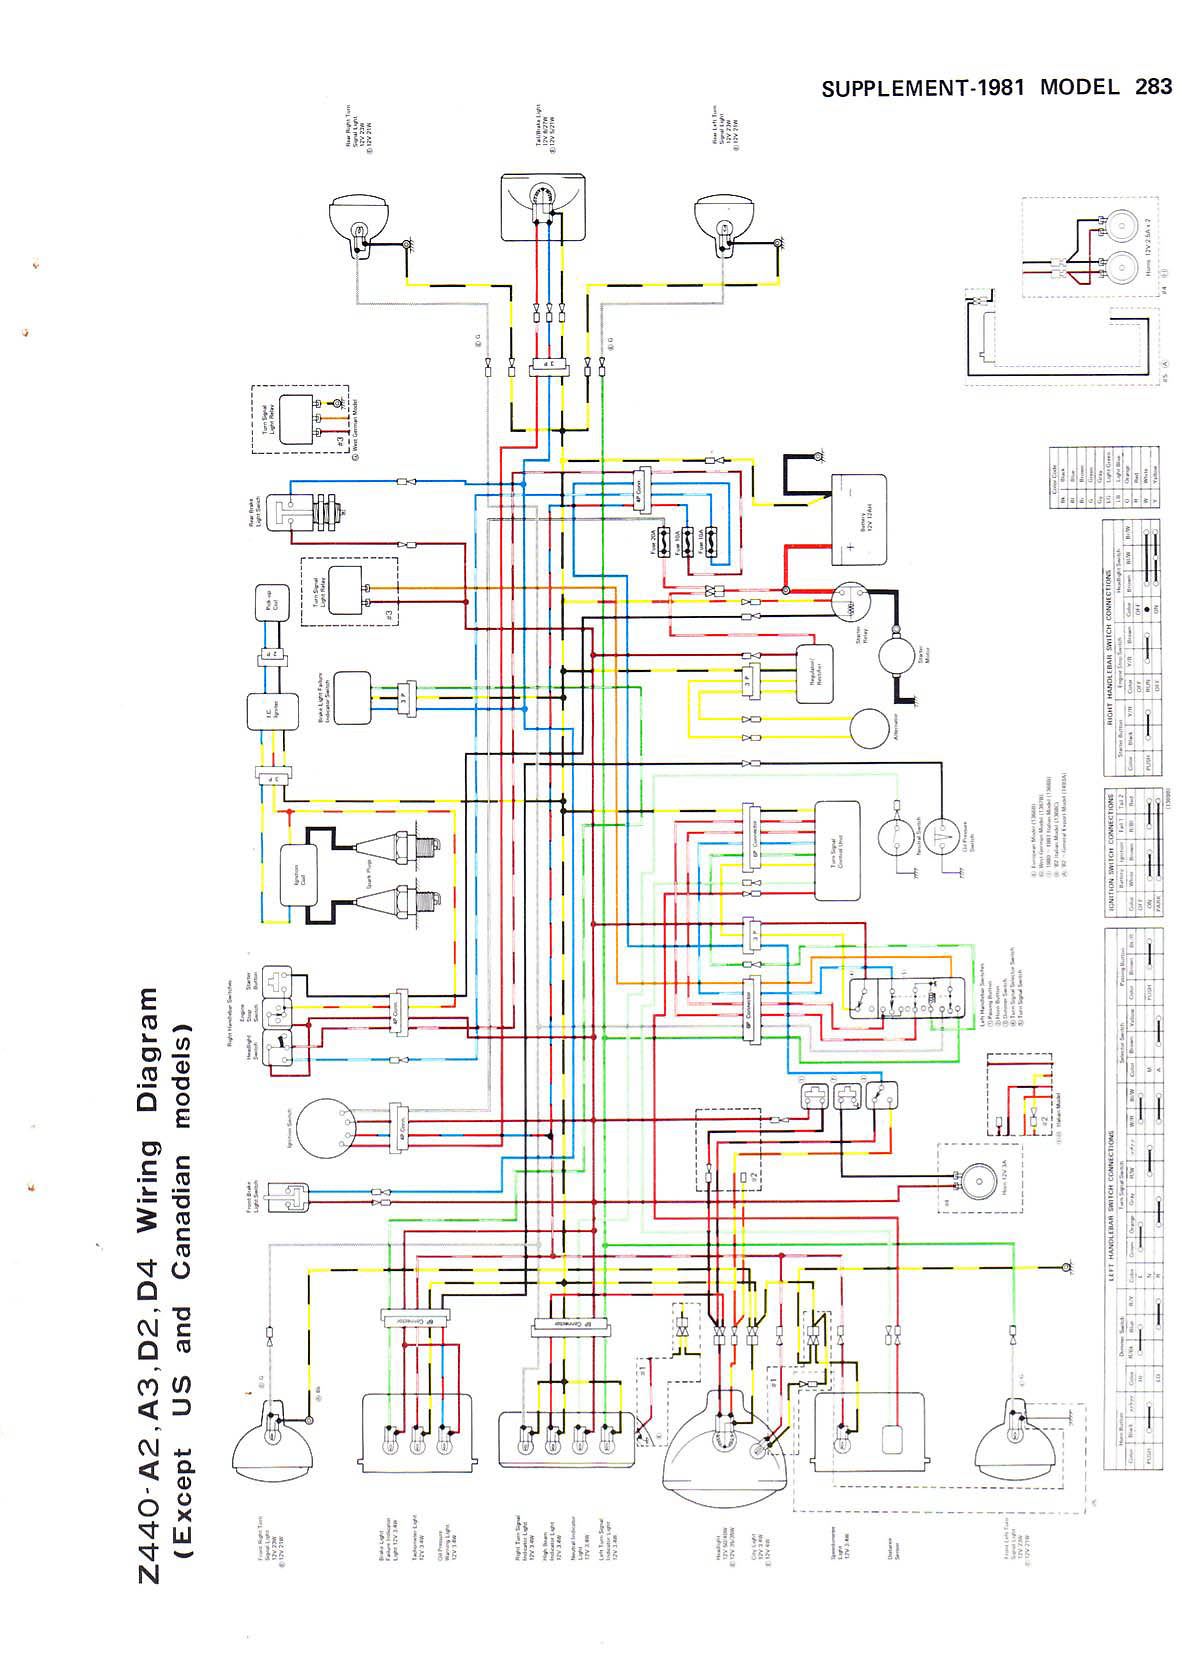 Kawasaki KZ 440 %2780 a %2782 Service Manual_Page_280 index of kz440 wiring diagrams kz400 wiring diagram at alyssarenee.co